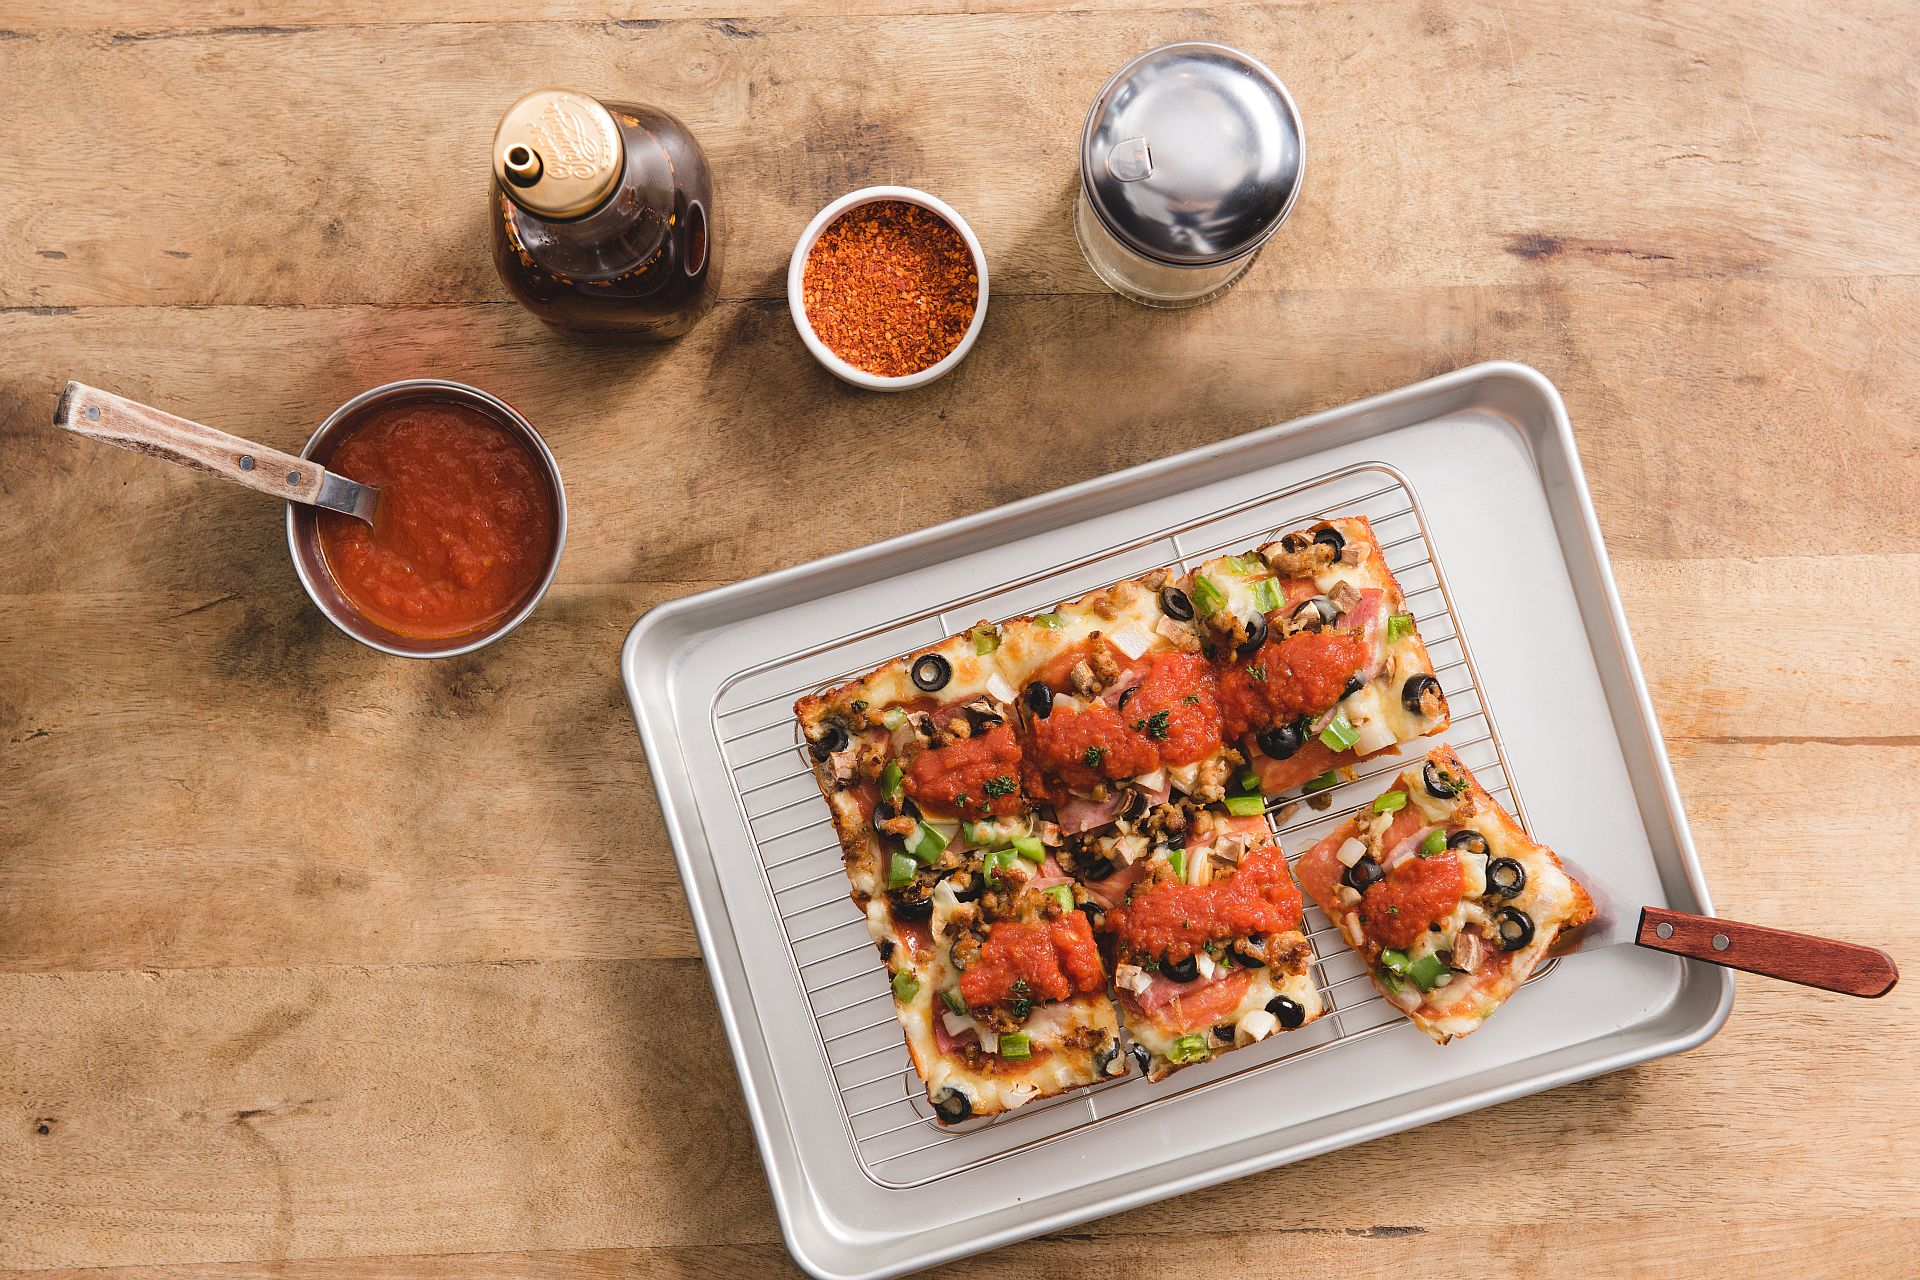 chiba Restaurant of amba Taipei Ximending introduces Detroit-style Square Pizza